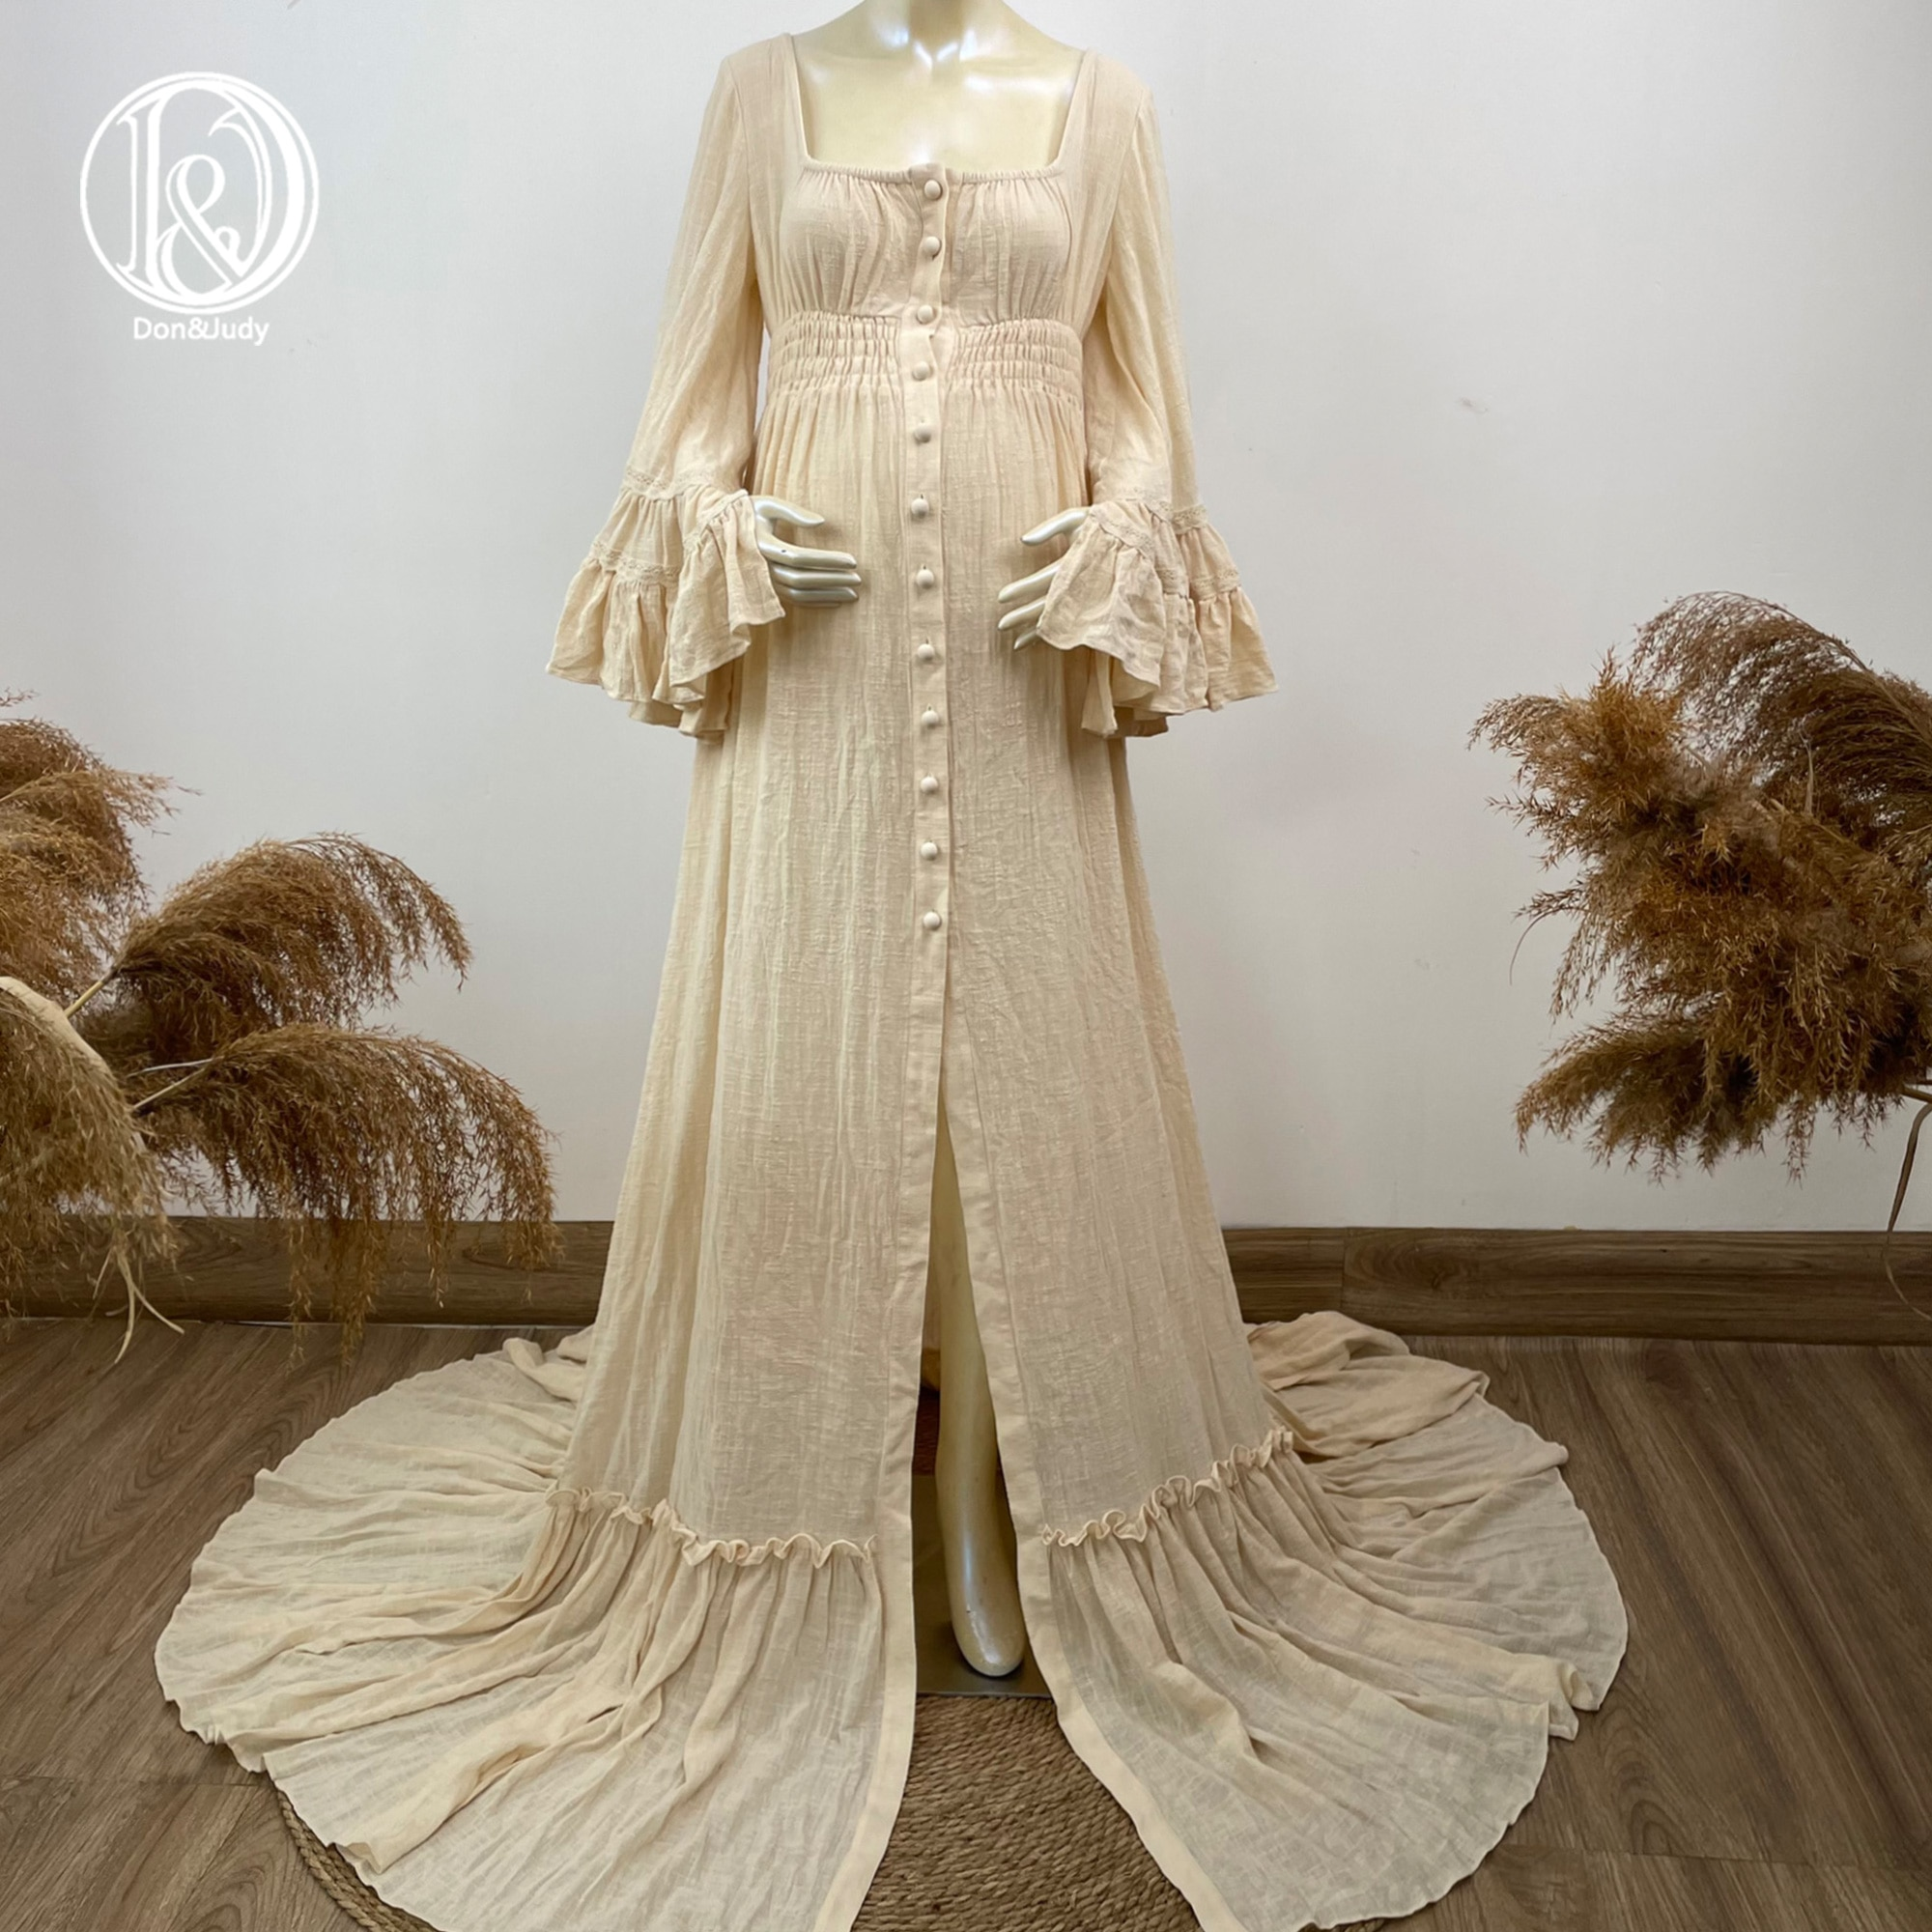 Don&Judy Boho Retro Maternity Or Non Maternity Dress for Photoshoot Photography Prop Party Evening Pregnant Woman Maxi Gown 2021